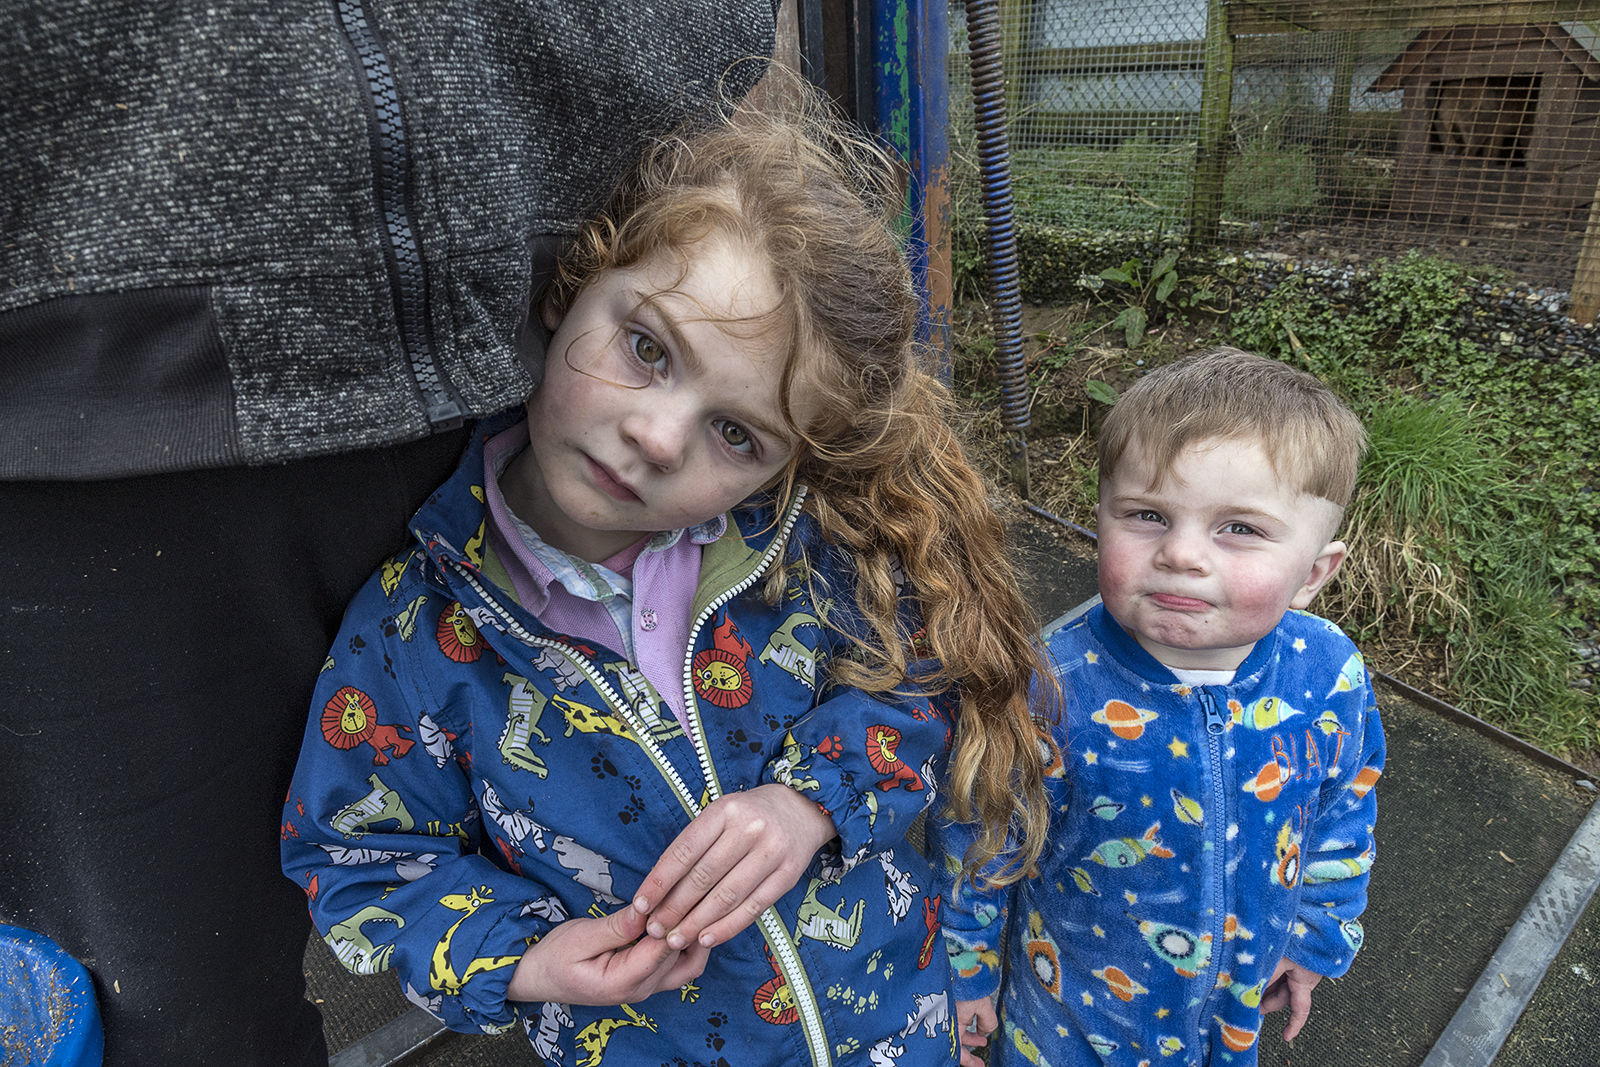 Lisa and brother, Tipperary, Ireland 2020